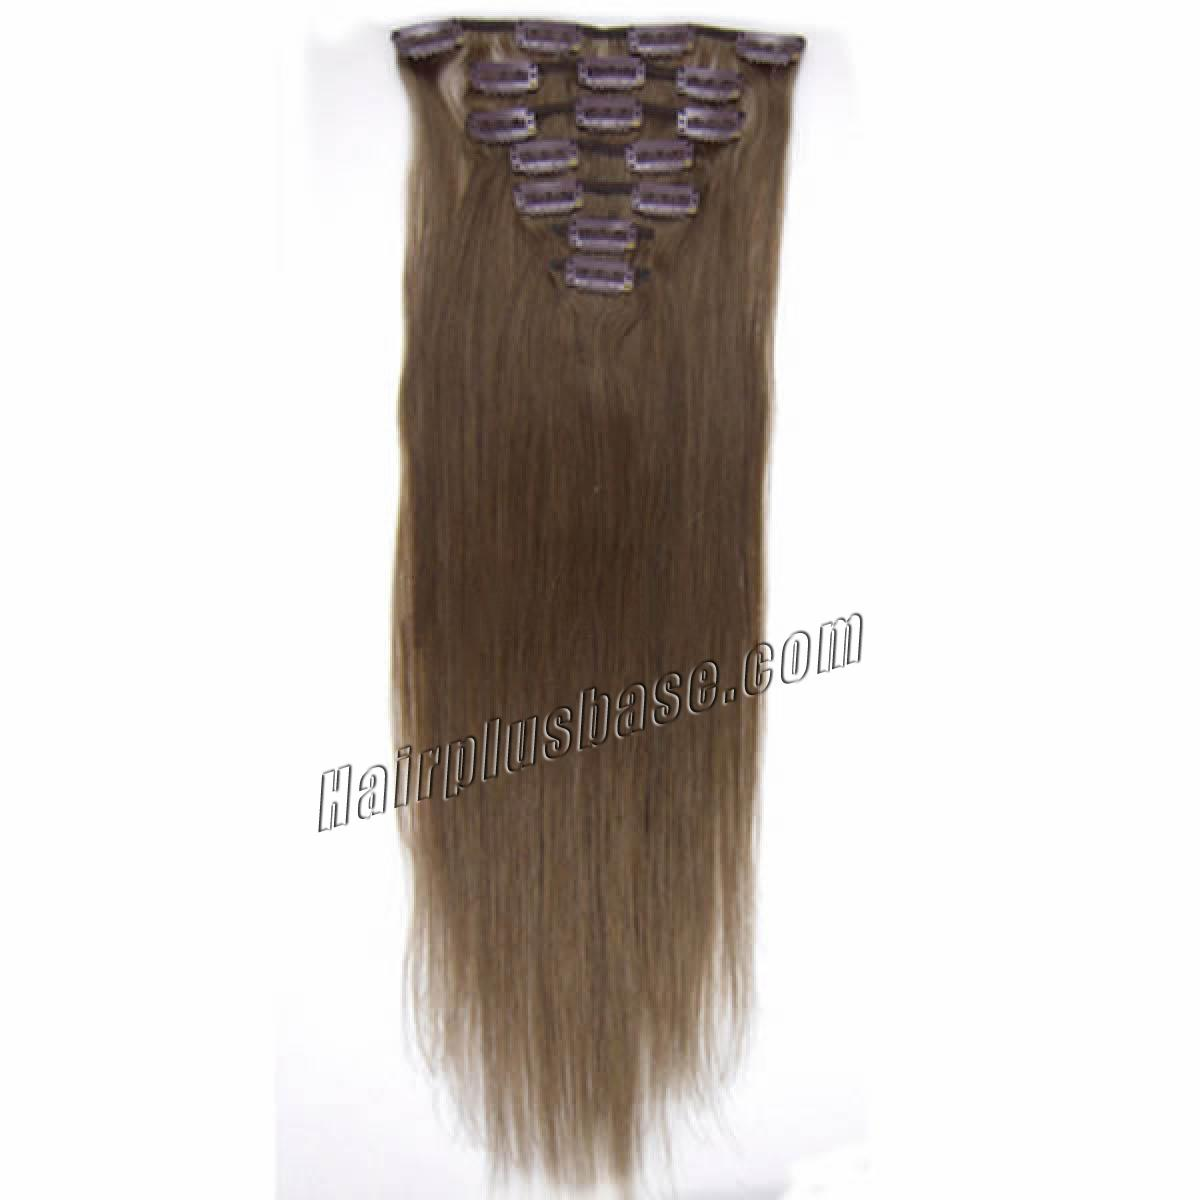 15 Inch #8 Ash Brown Clip In Human Hair Extensions 7pcs no 2